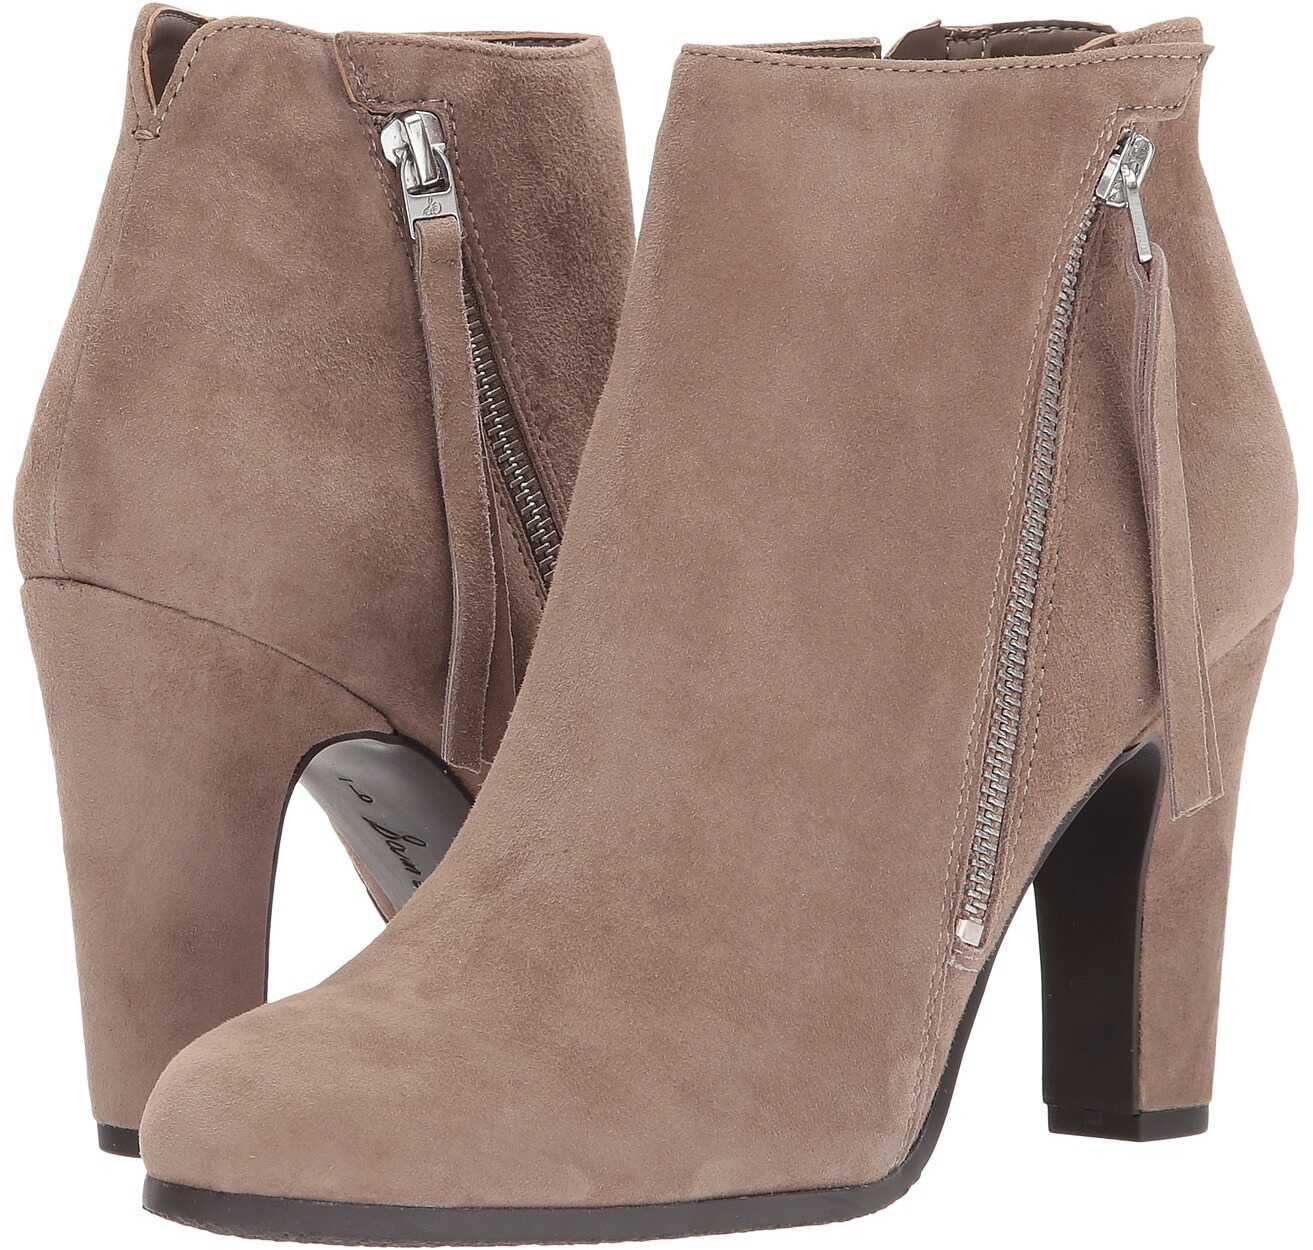 Sam Edelman Sadee Putty Kid Suede Leather